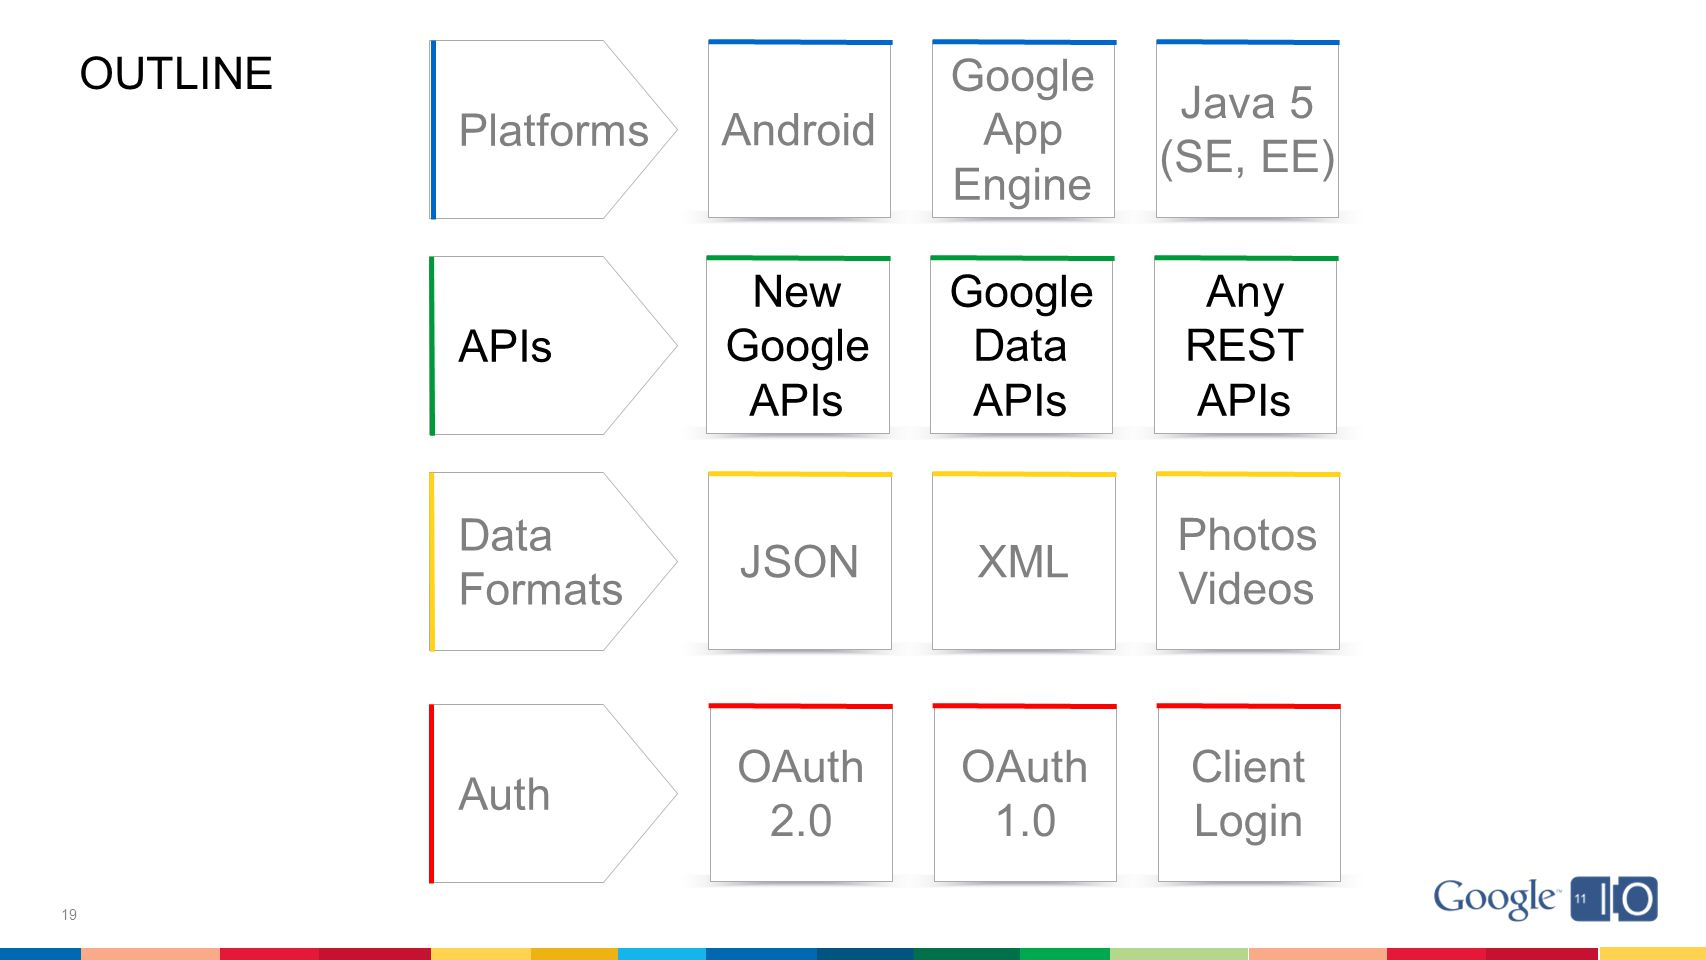 19 APIs OAuth 2.0 Client Login OAuth 1.0 Photos Videos XMLJSON Auth New Google APIs Google Data APIs Data Formats Any REST APIs Platforms Android Google App Engine Java 5 (SE, EE) OUTLINE